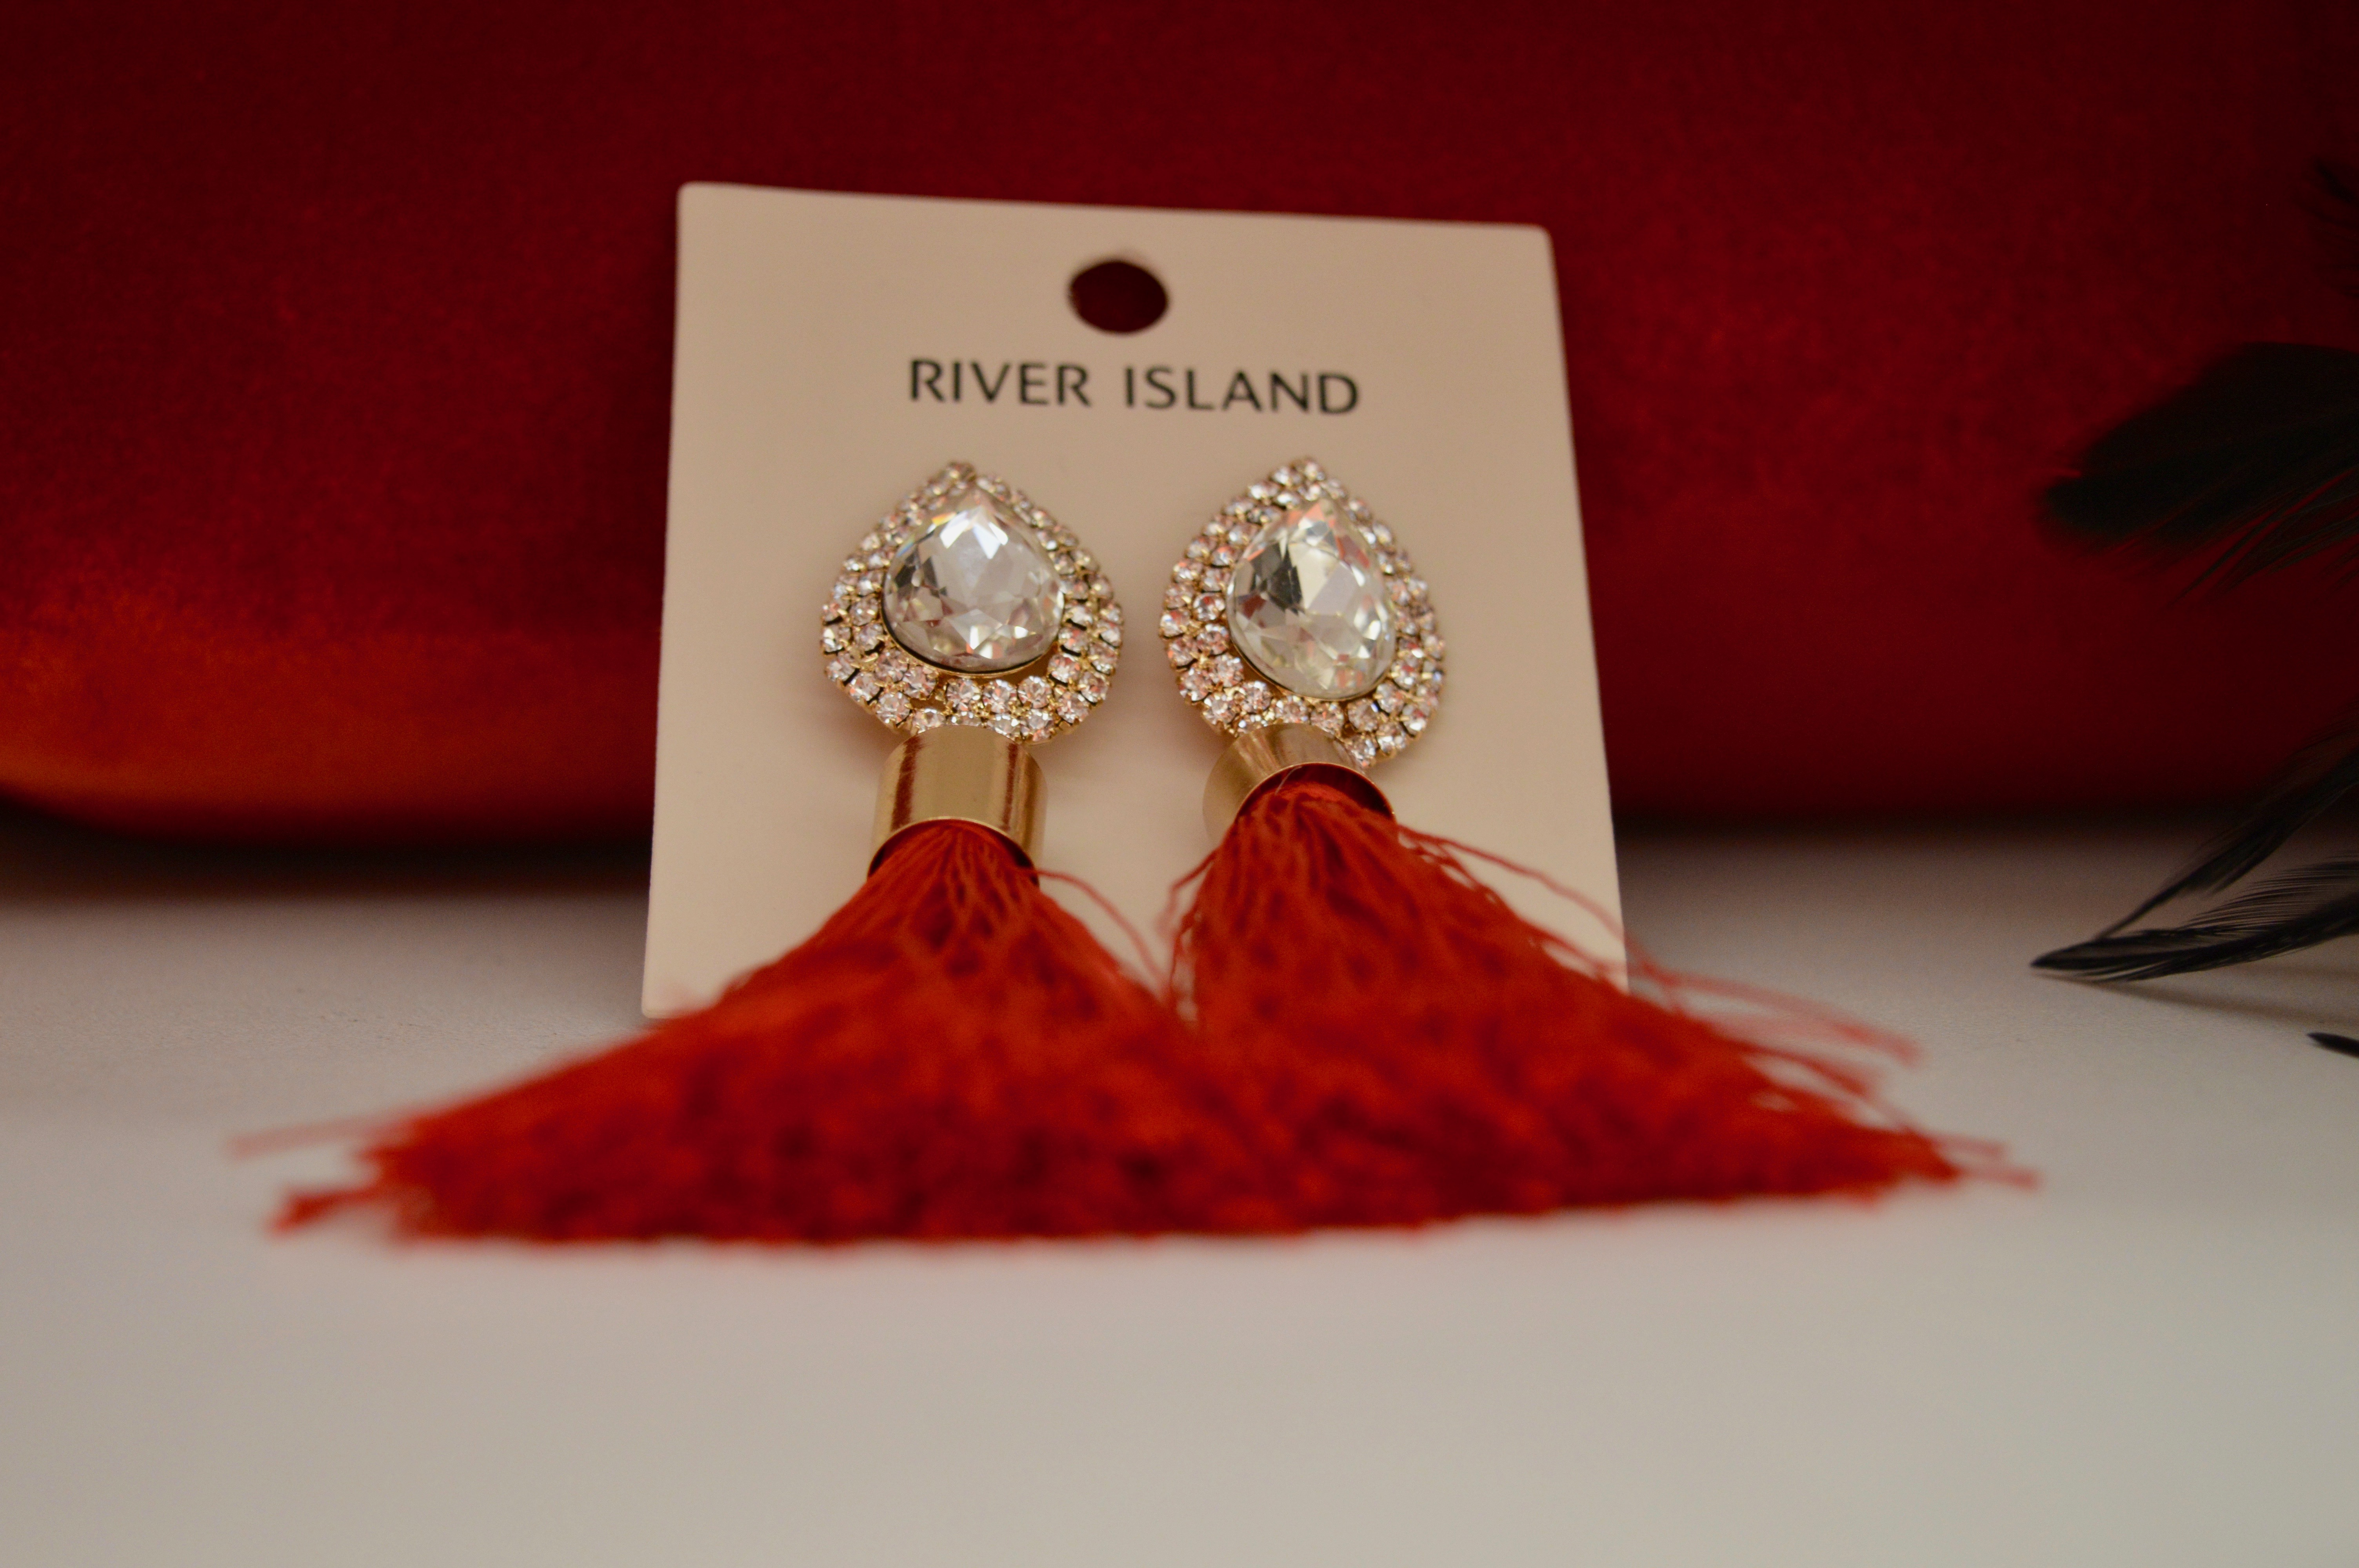 river-island-tassle-earrings-intu-eldon-square-winter-fashion-stylissimo-newcastle-high-street-halloween-elle-blonde-luxury-lifestyle-destination-blog